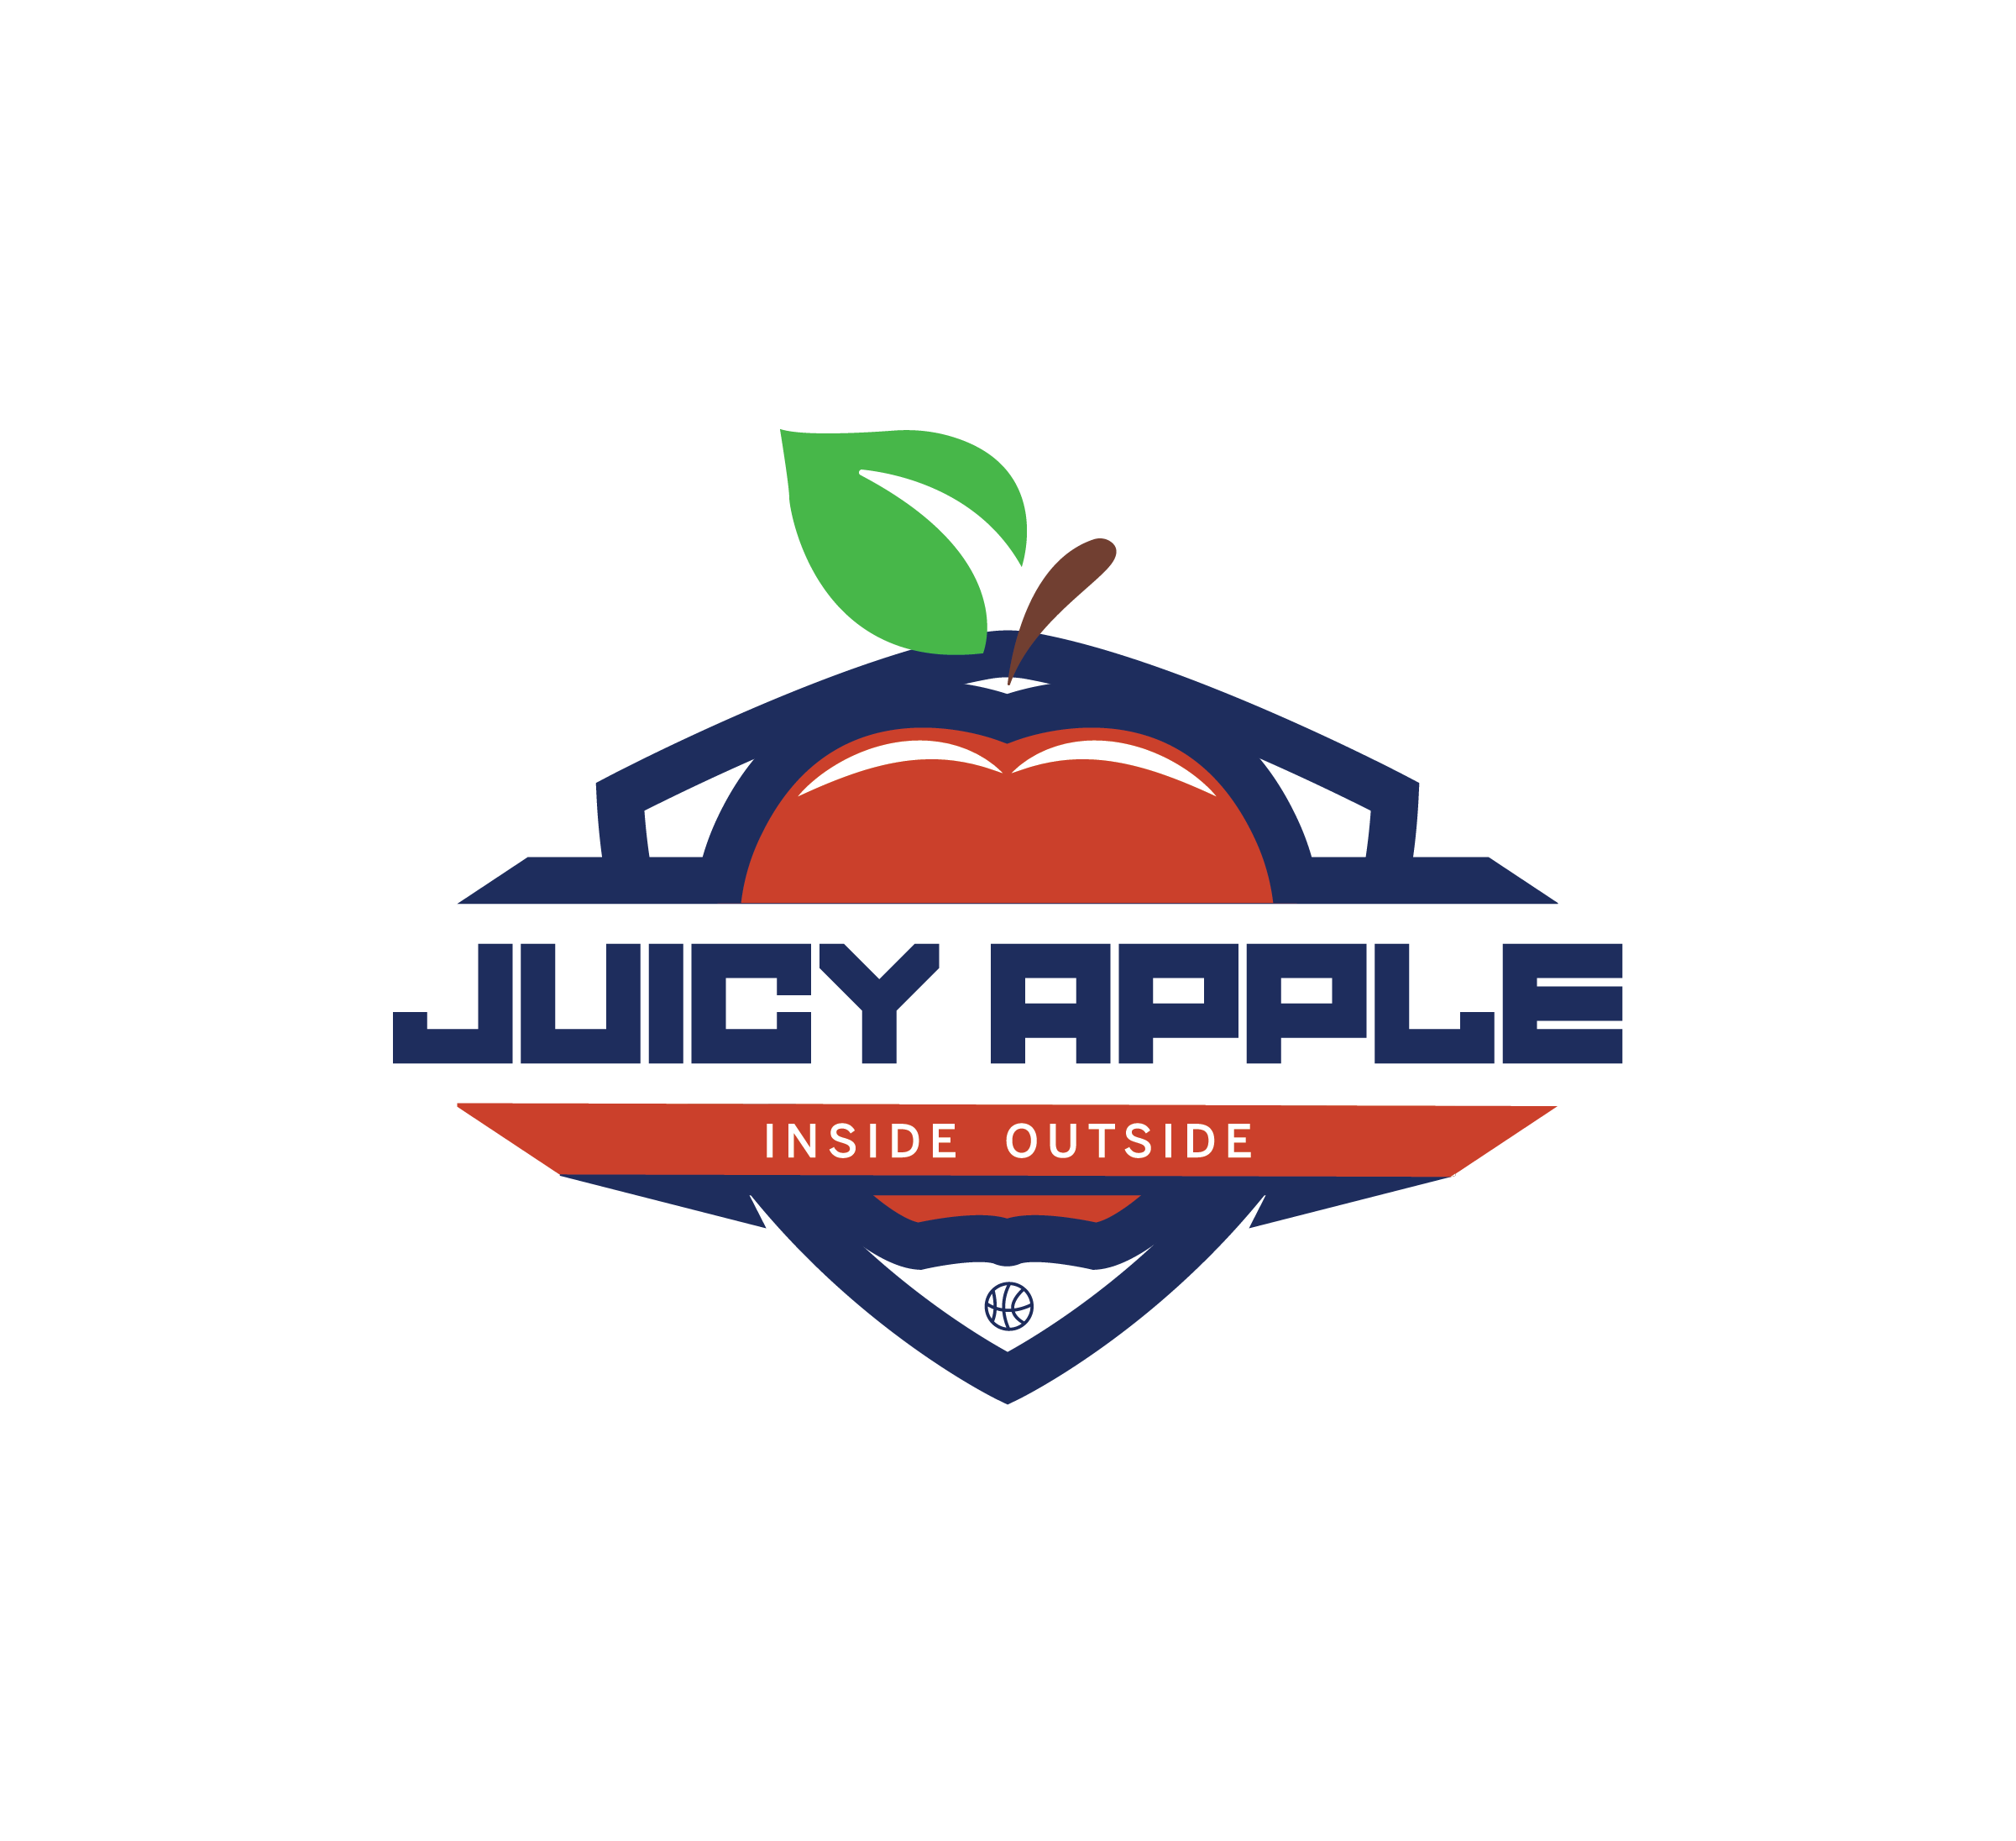 Juicy apple basketball team logo